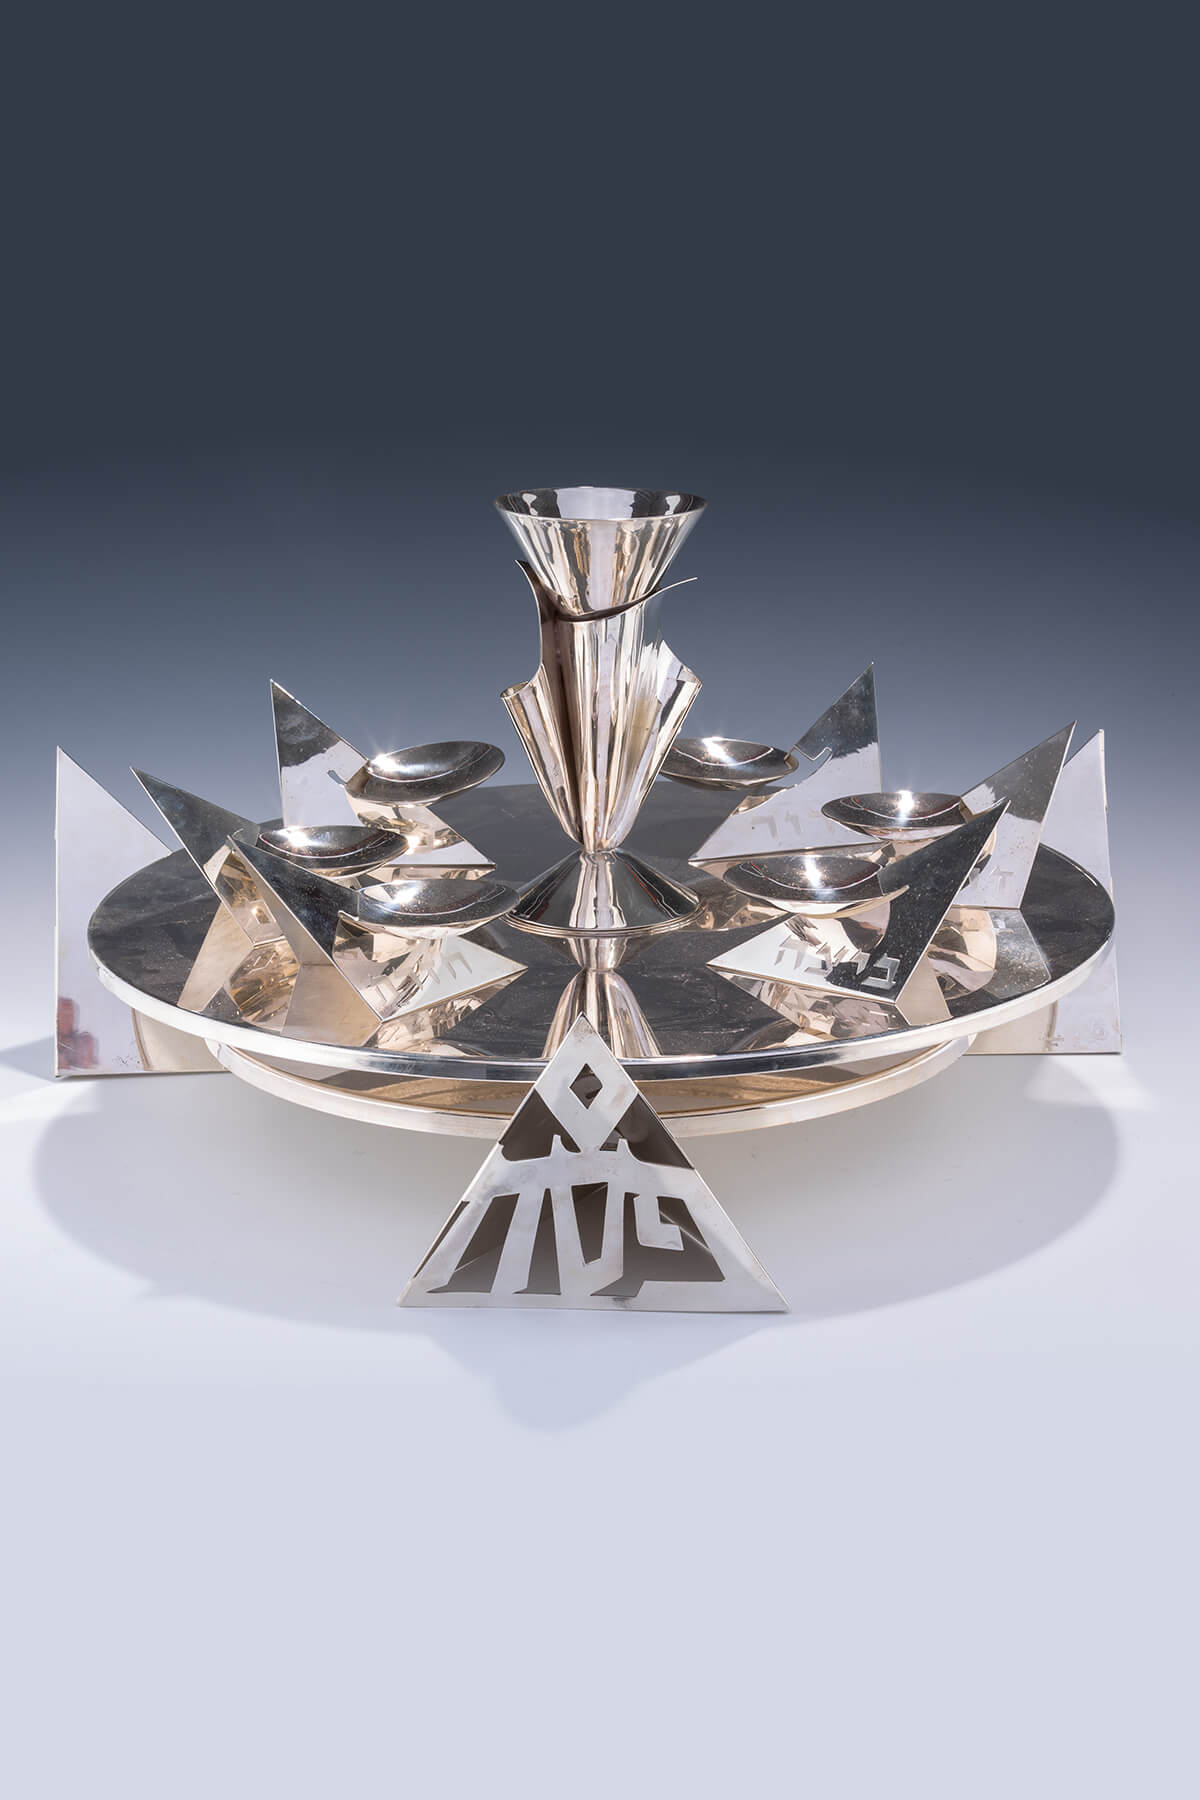 127. A Sterling Silver Seder Tray by Harold Rabinowitz